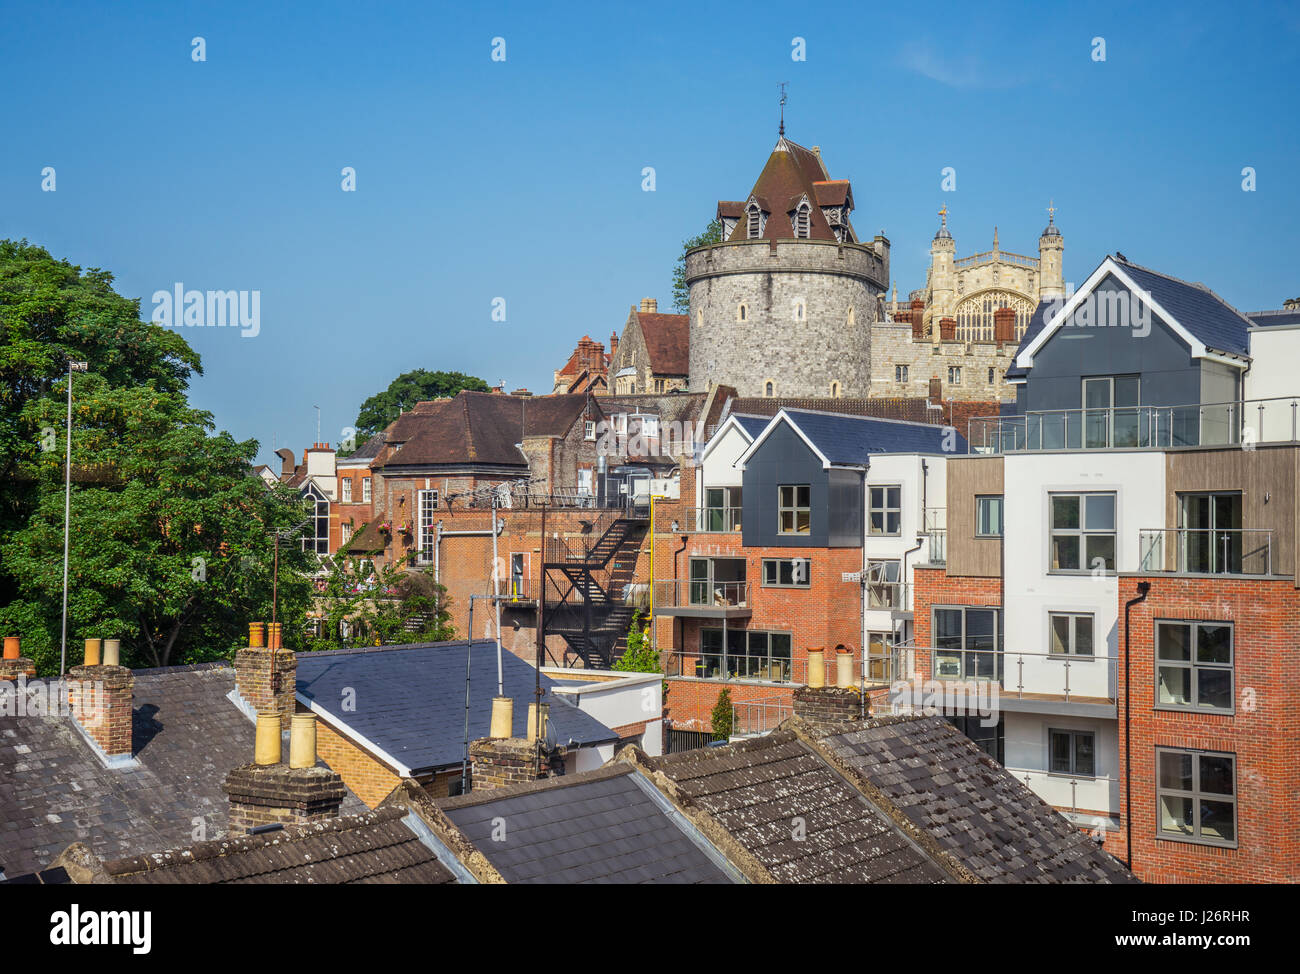 United Kingdom, England, Berhshire, view over the roofs of Windsor, against the backdrop of Windsor Castle - Stock Image